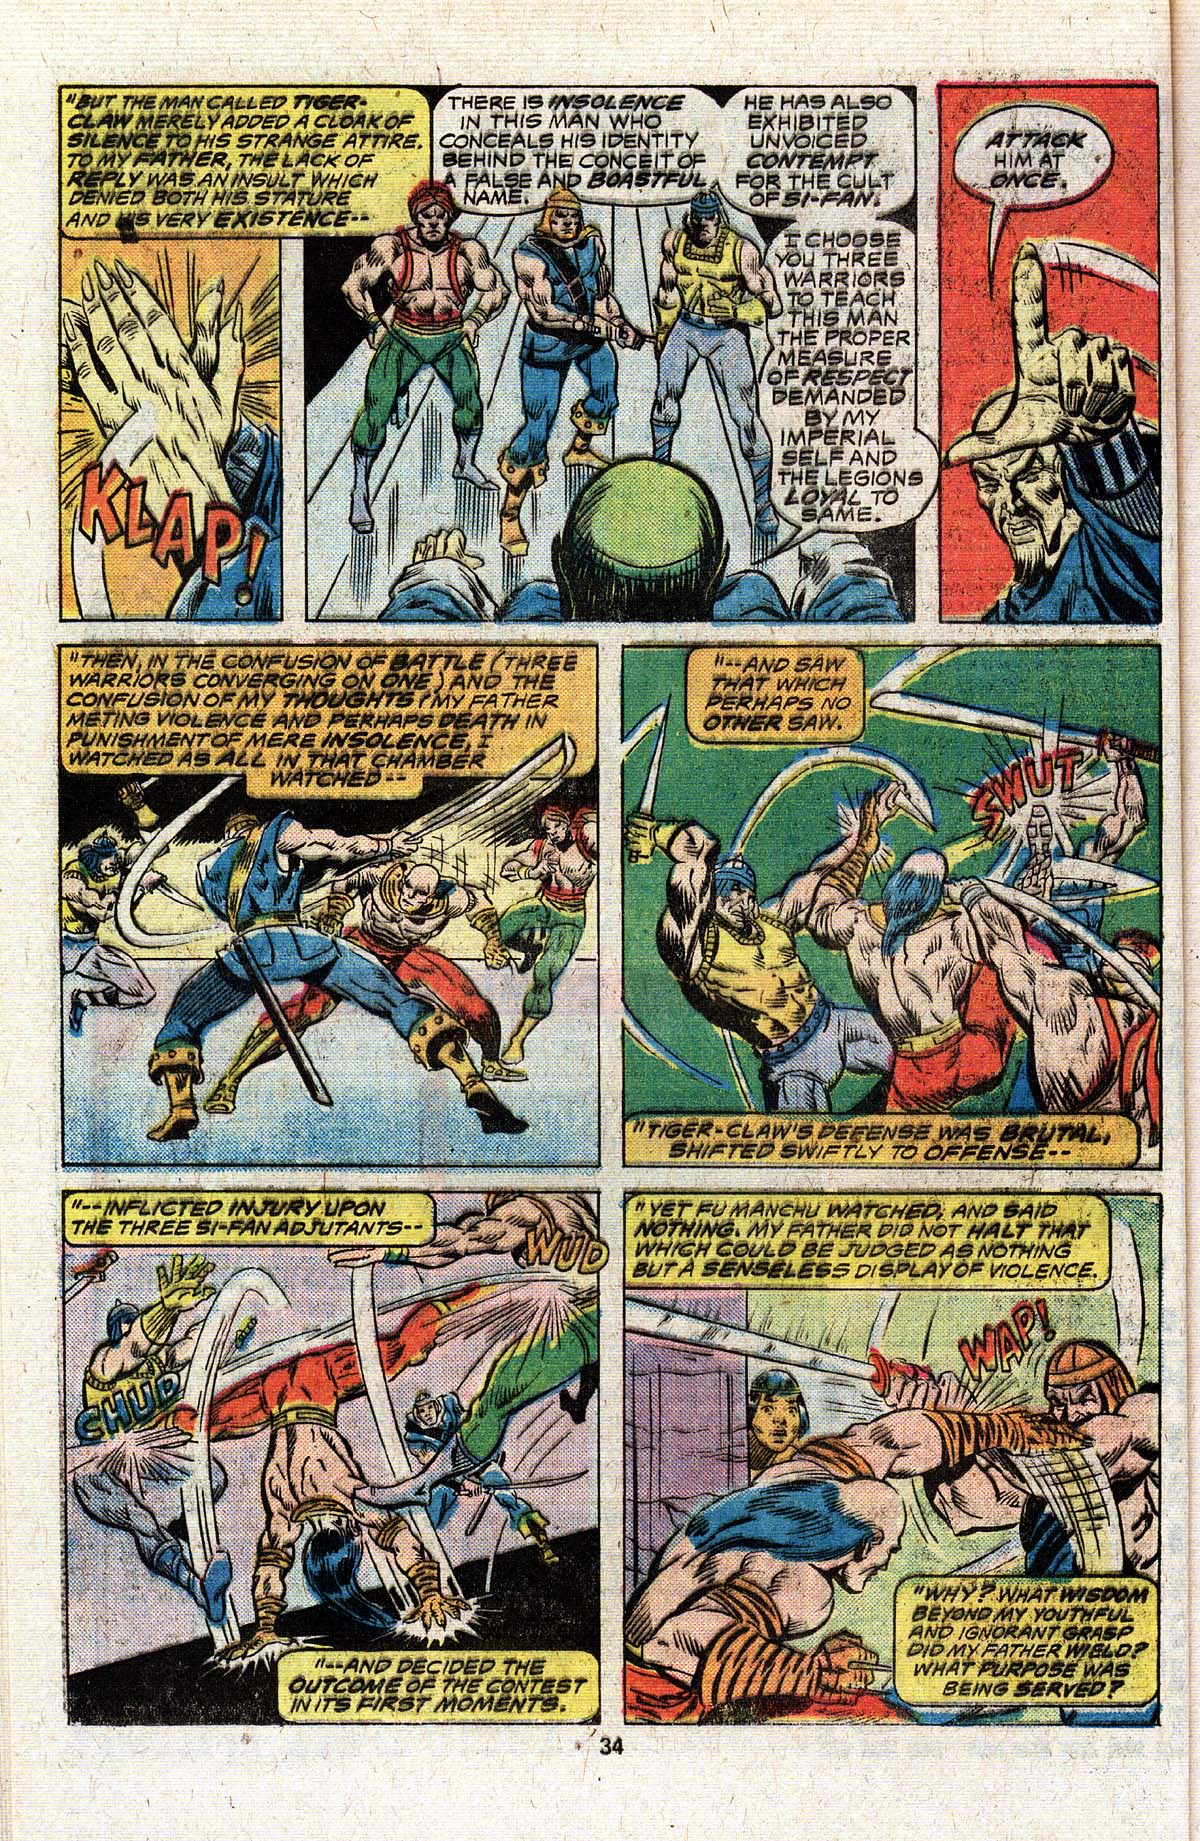 Read online Giant-Size Master of Kung Fu comic -  Issue #4 - 27